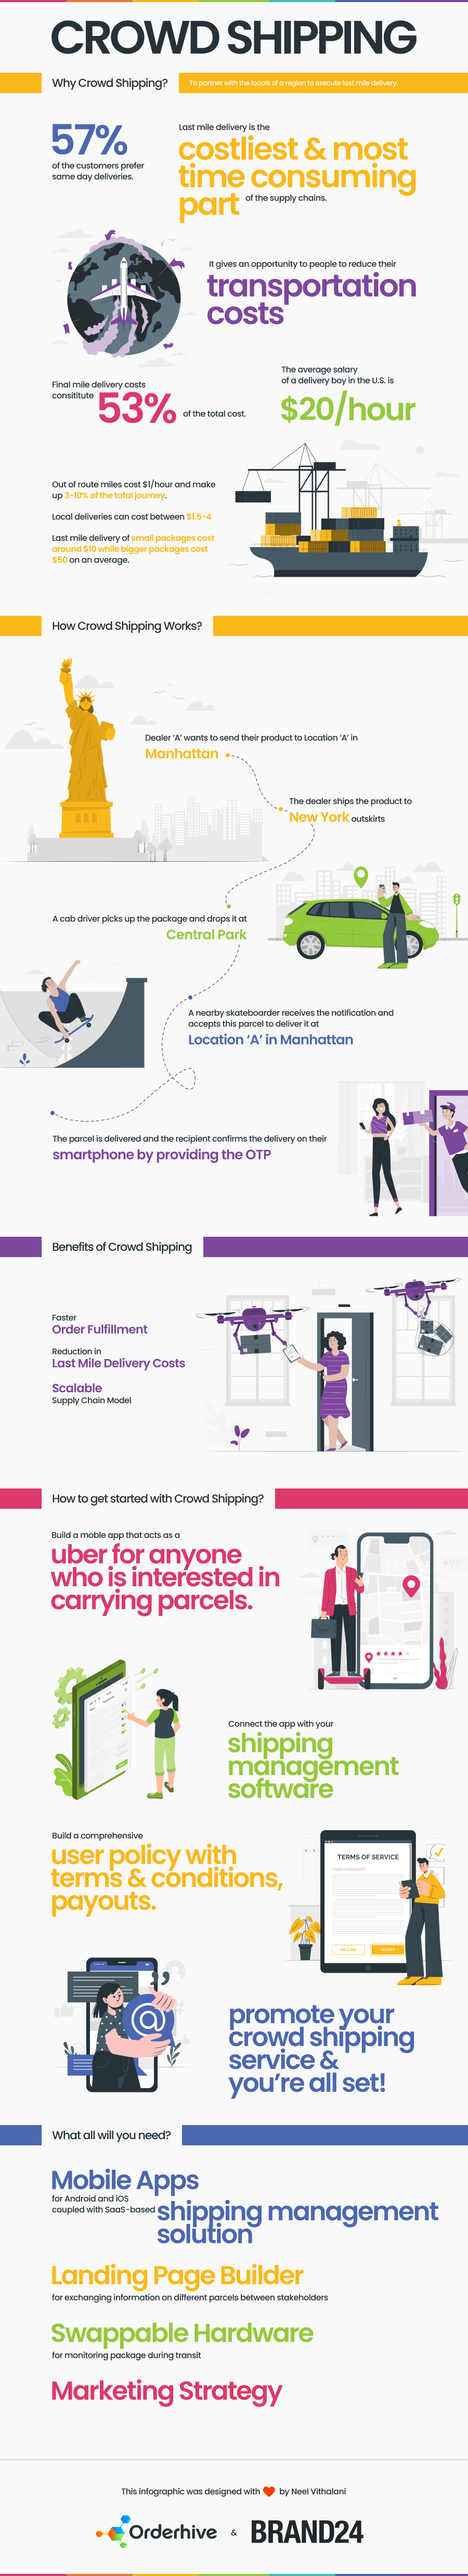 Crowd Shipping Infographic